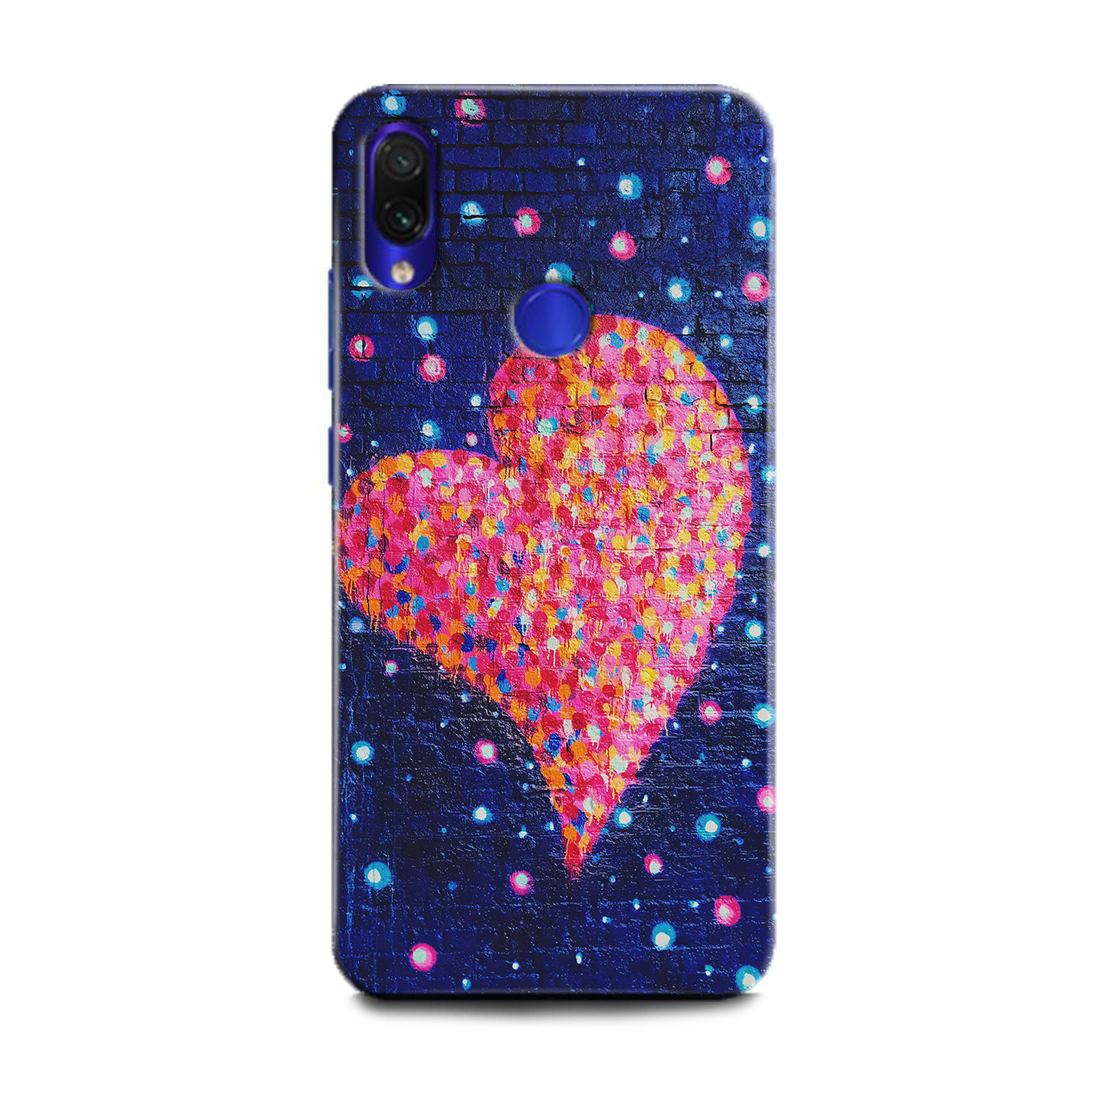 INDICRAFT Mobile Back Cover For Mi Redmi Note 7 / Hard Case (Heart, Love, Red Heart, Abstract Art, Red Rose, Texture, Glitter, Unicorn, Galaxy, Texture, MZB7266IN) (AB-RedmiNote7-0710)